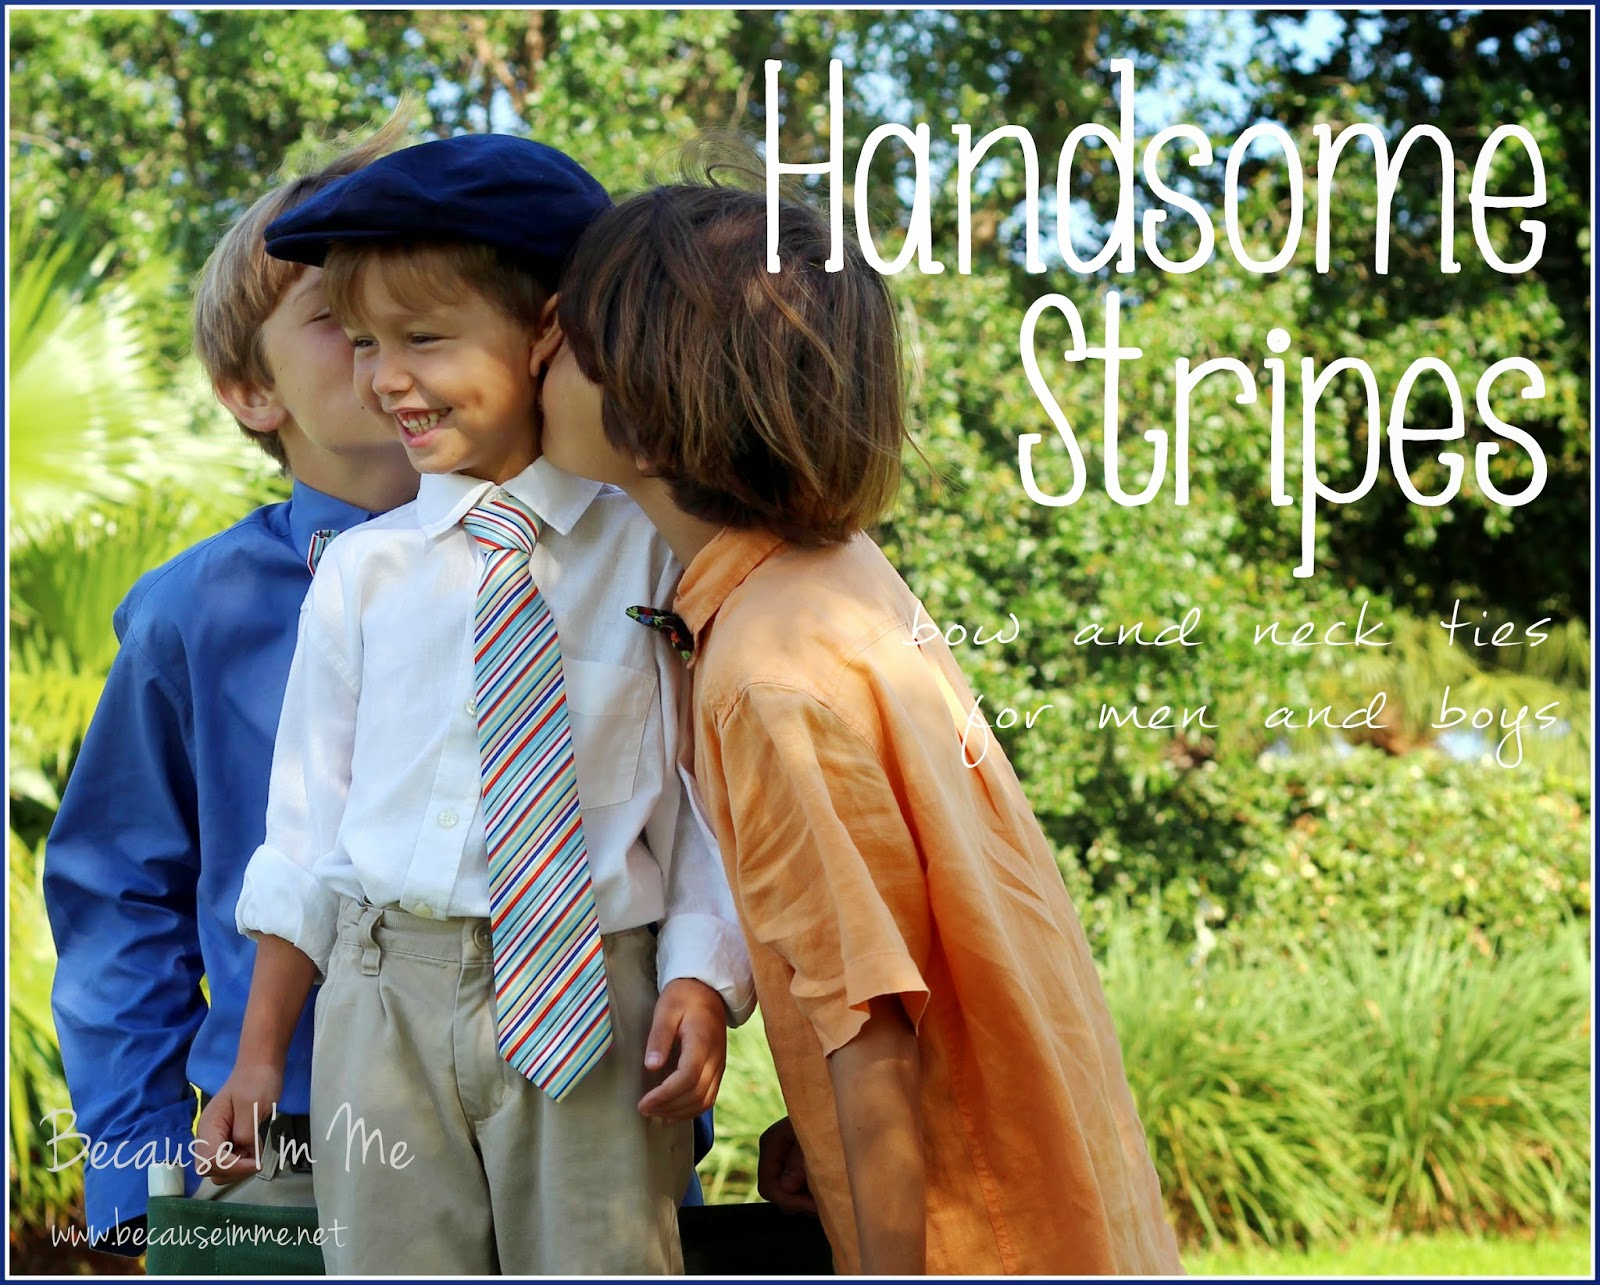 Because I'm Me handsome striped cotton bow and neck ties for men and boys